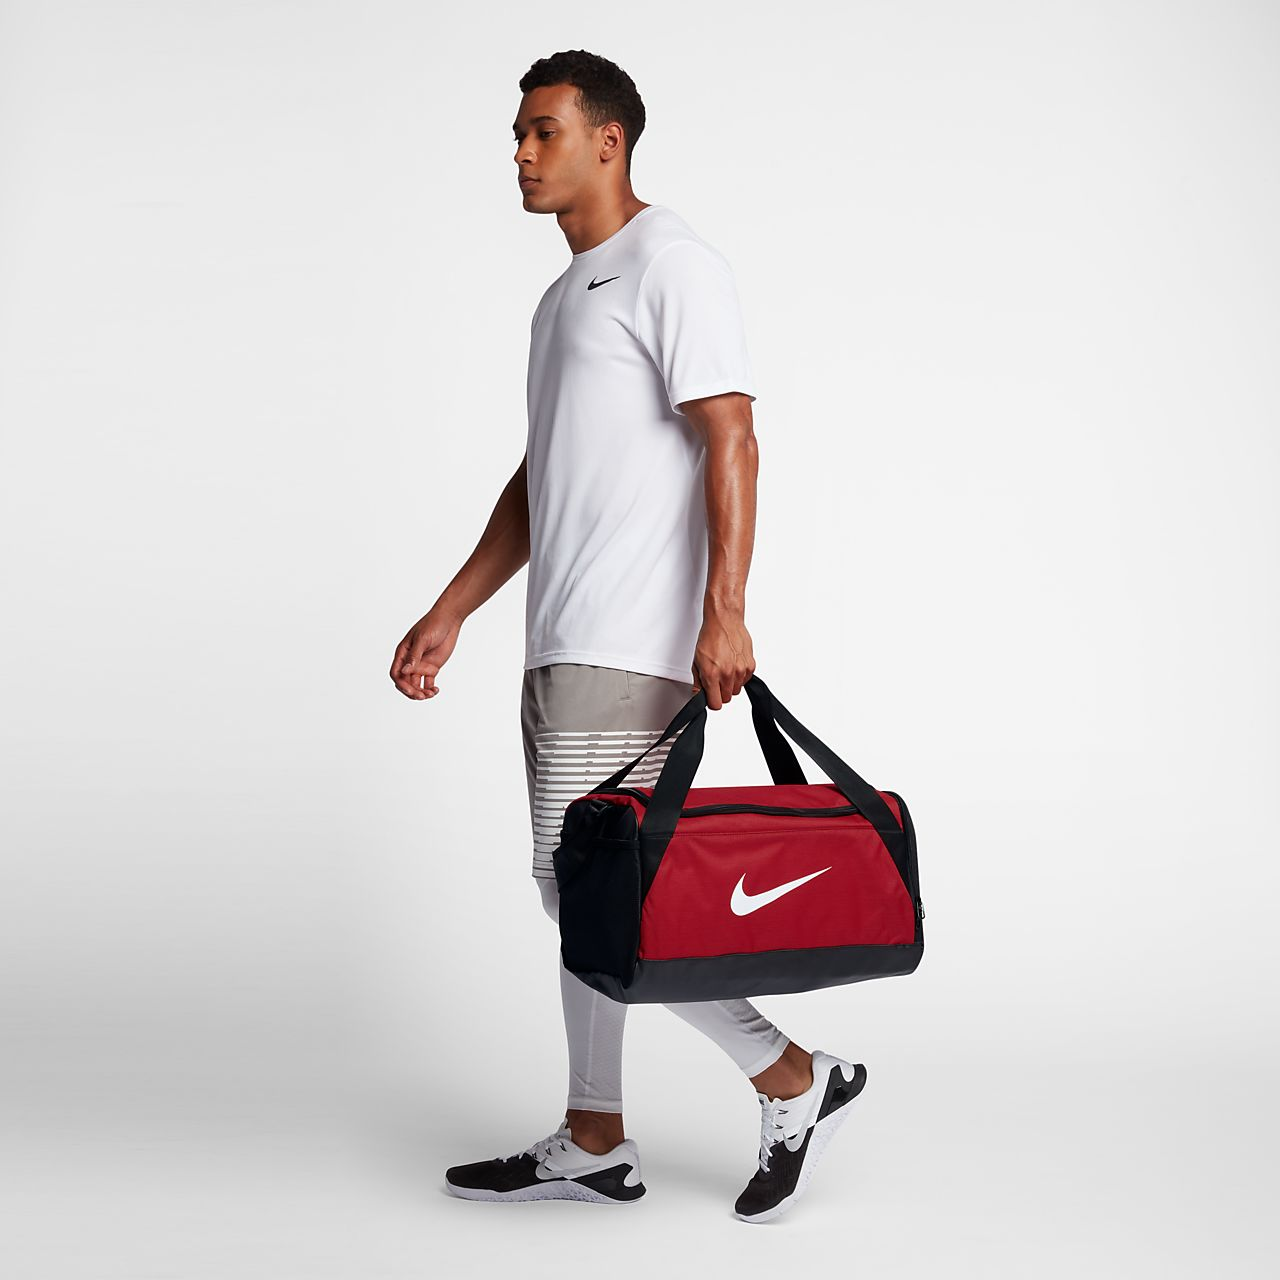 Nike Brasilia Small Duffle Bag - / - Mens Buy Cheap 2018 New 8lwN2mXb8